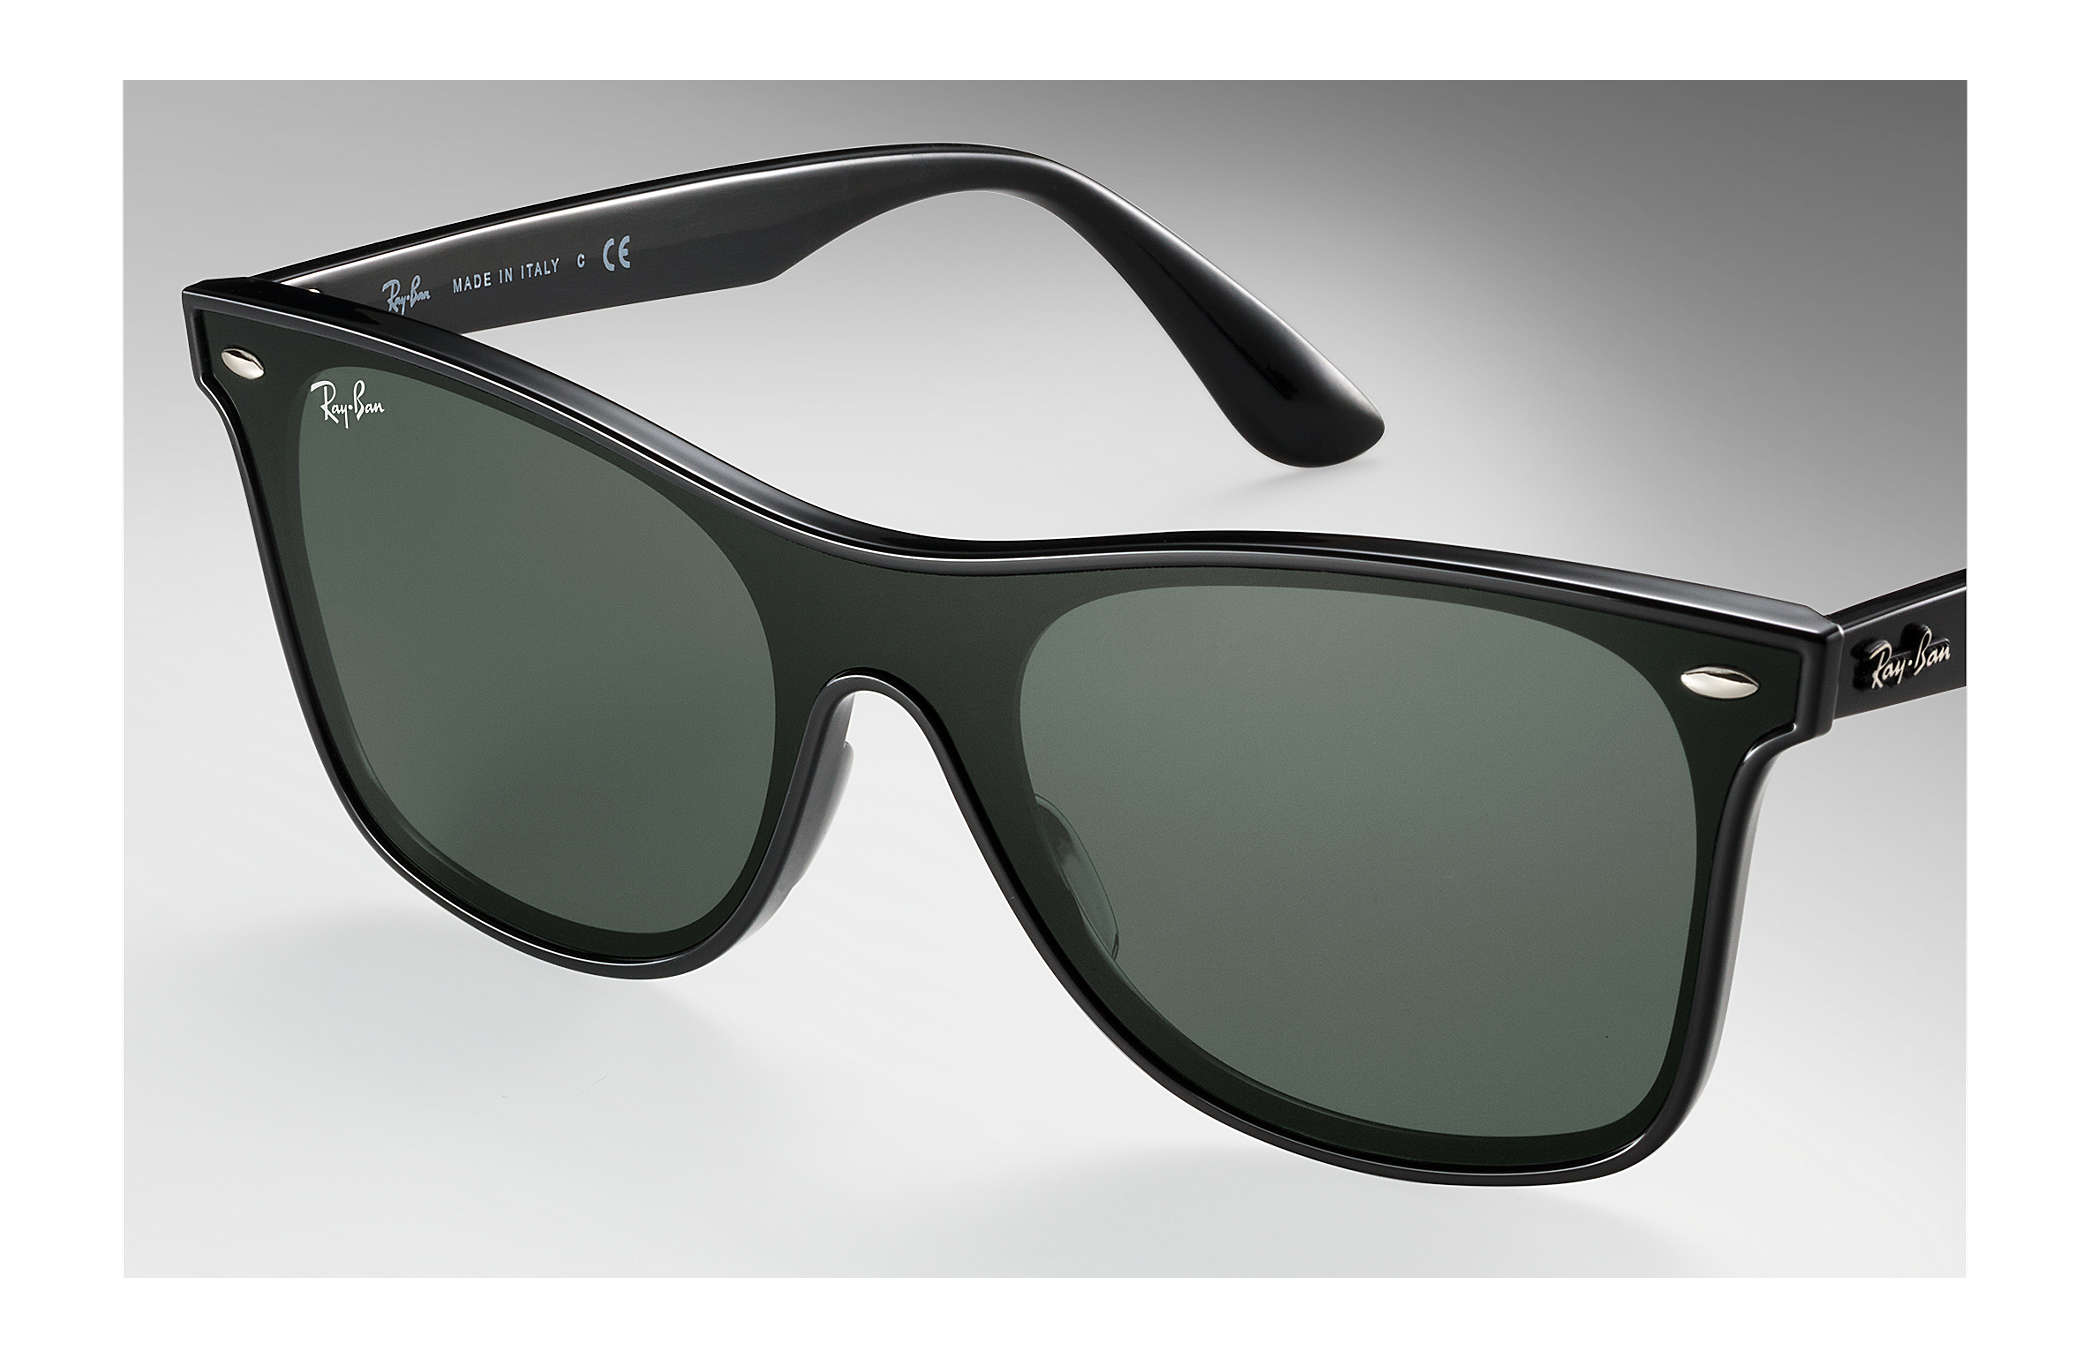 Ray-Ban Blaze Wayfarer RB4440N Black - Nylon - Green Lenses ... 671e8786101